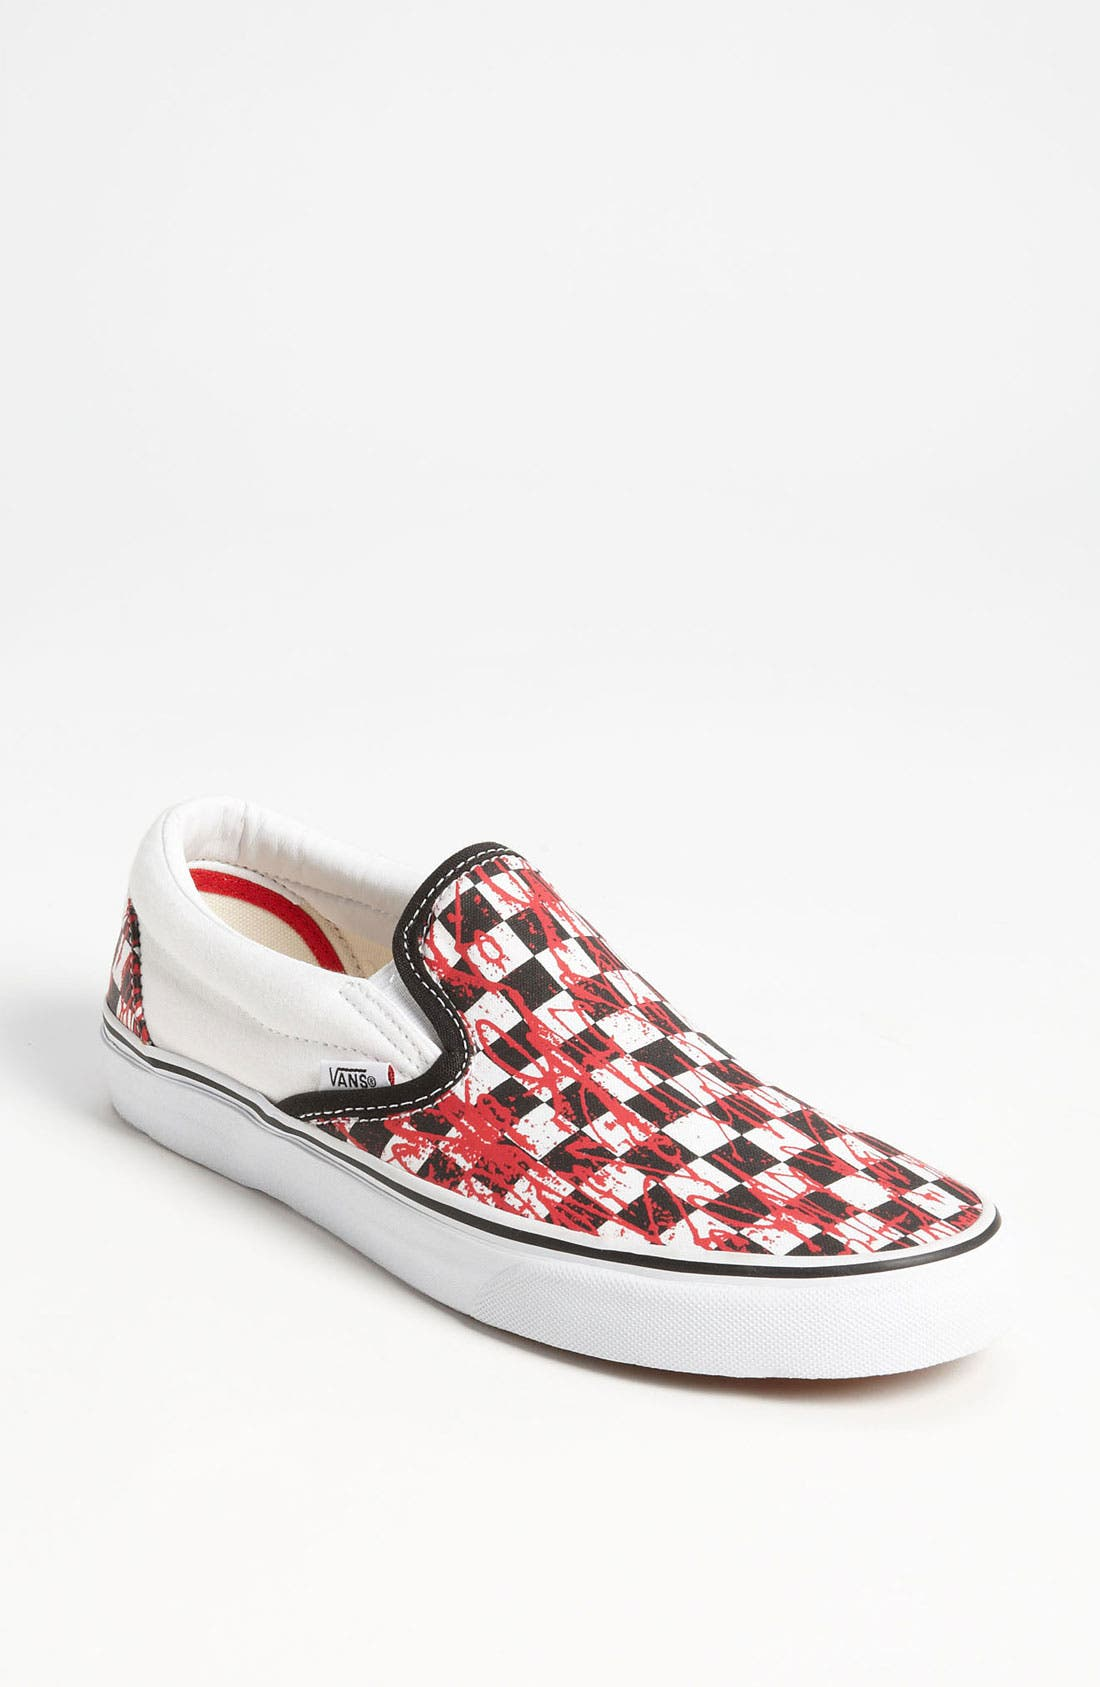 Main Image - Vans 'Love Me' Sneaker (Women)